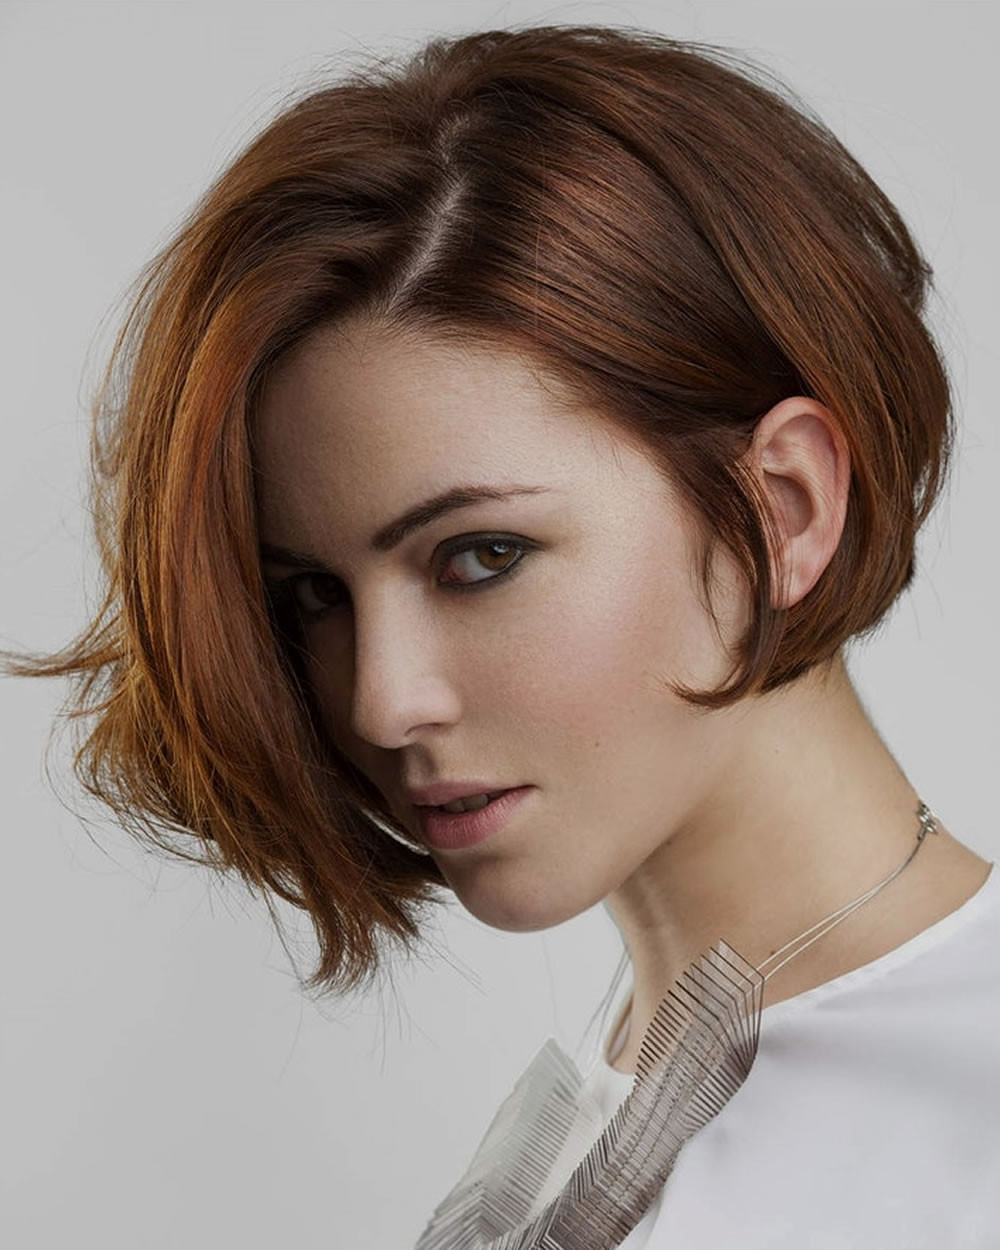 33+ Most Stylish Short Curly Hairstyles & Haircuts For Women Pertaining To Short Bob For Curly Hairstyles (View 12 of 20)